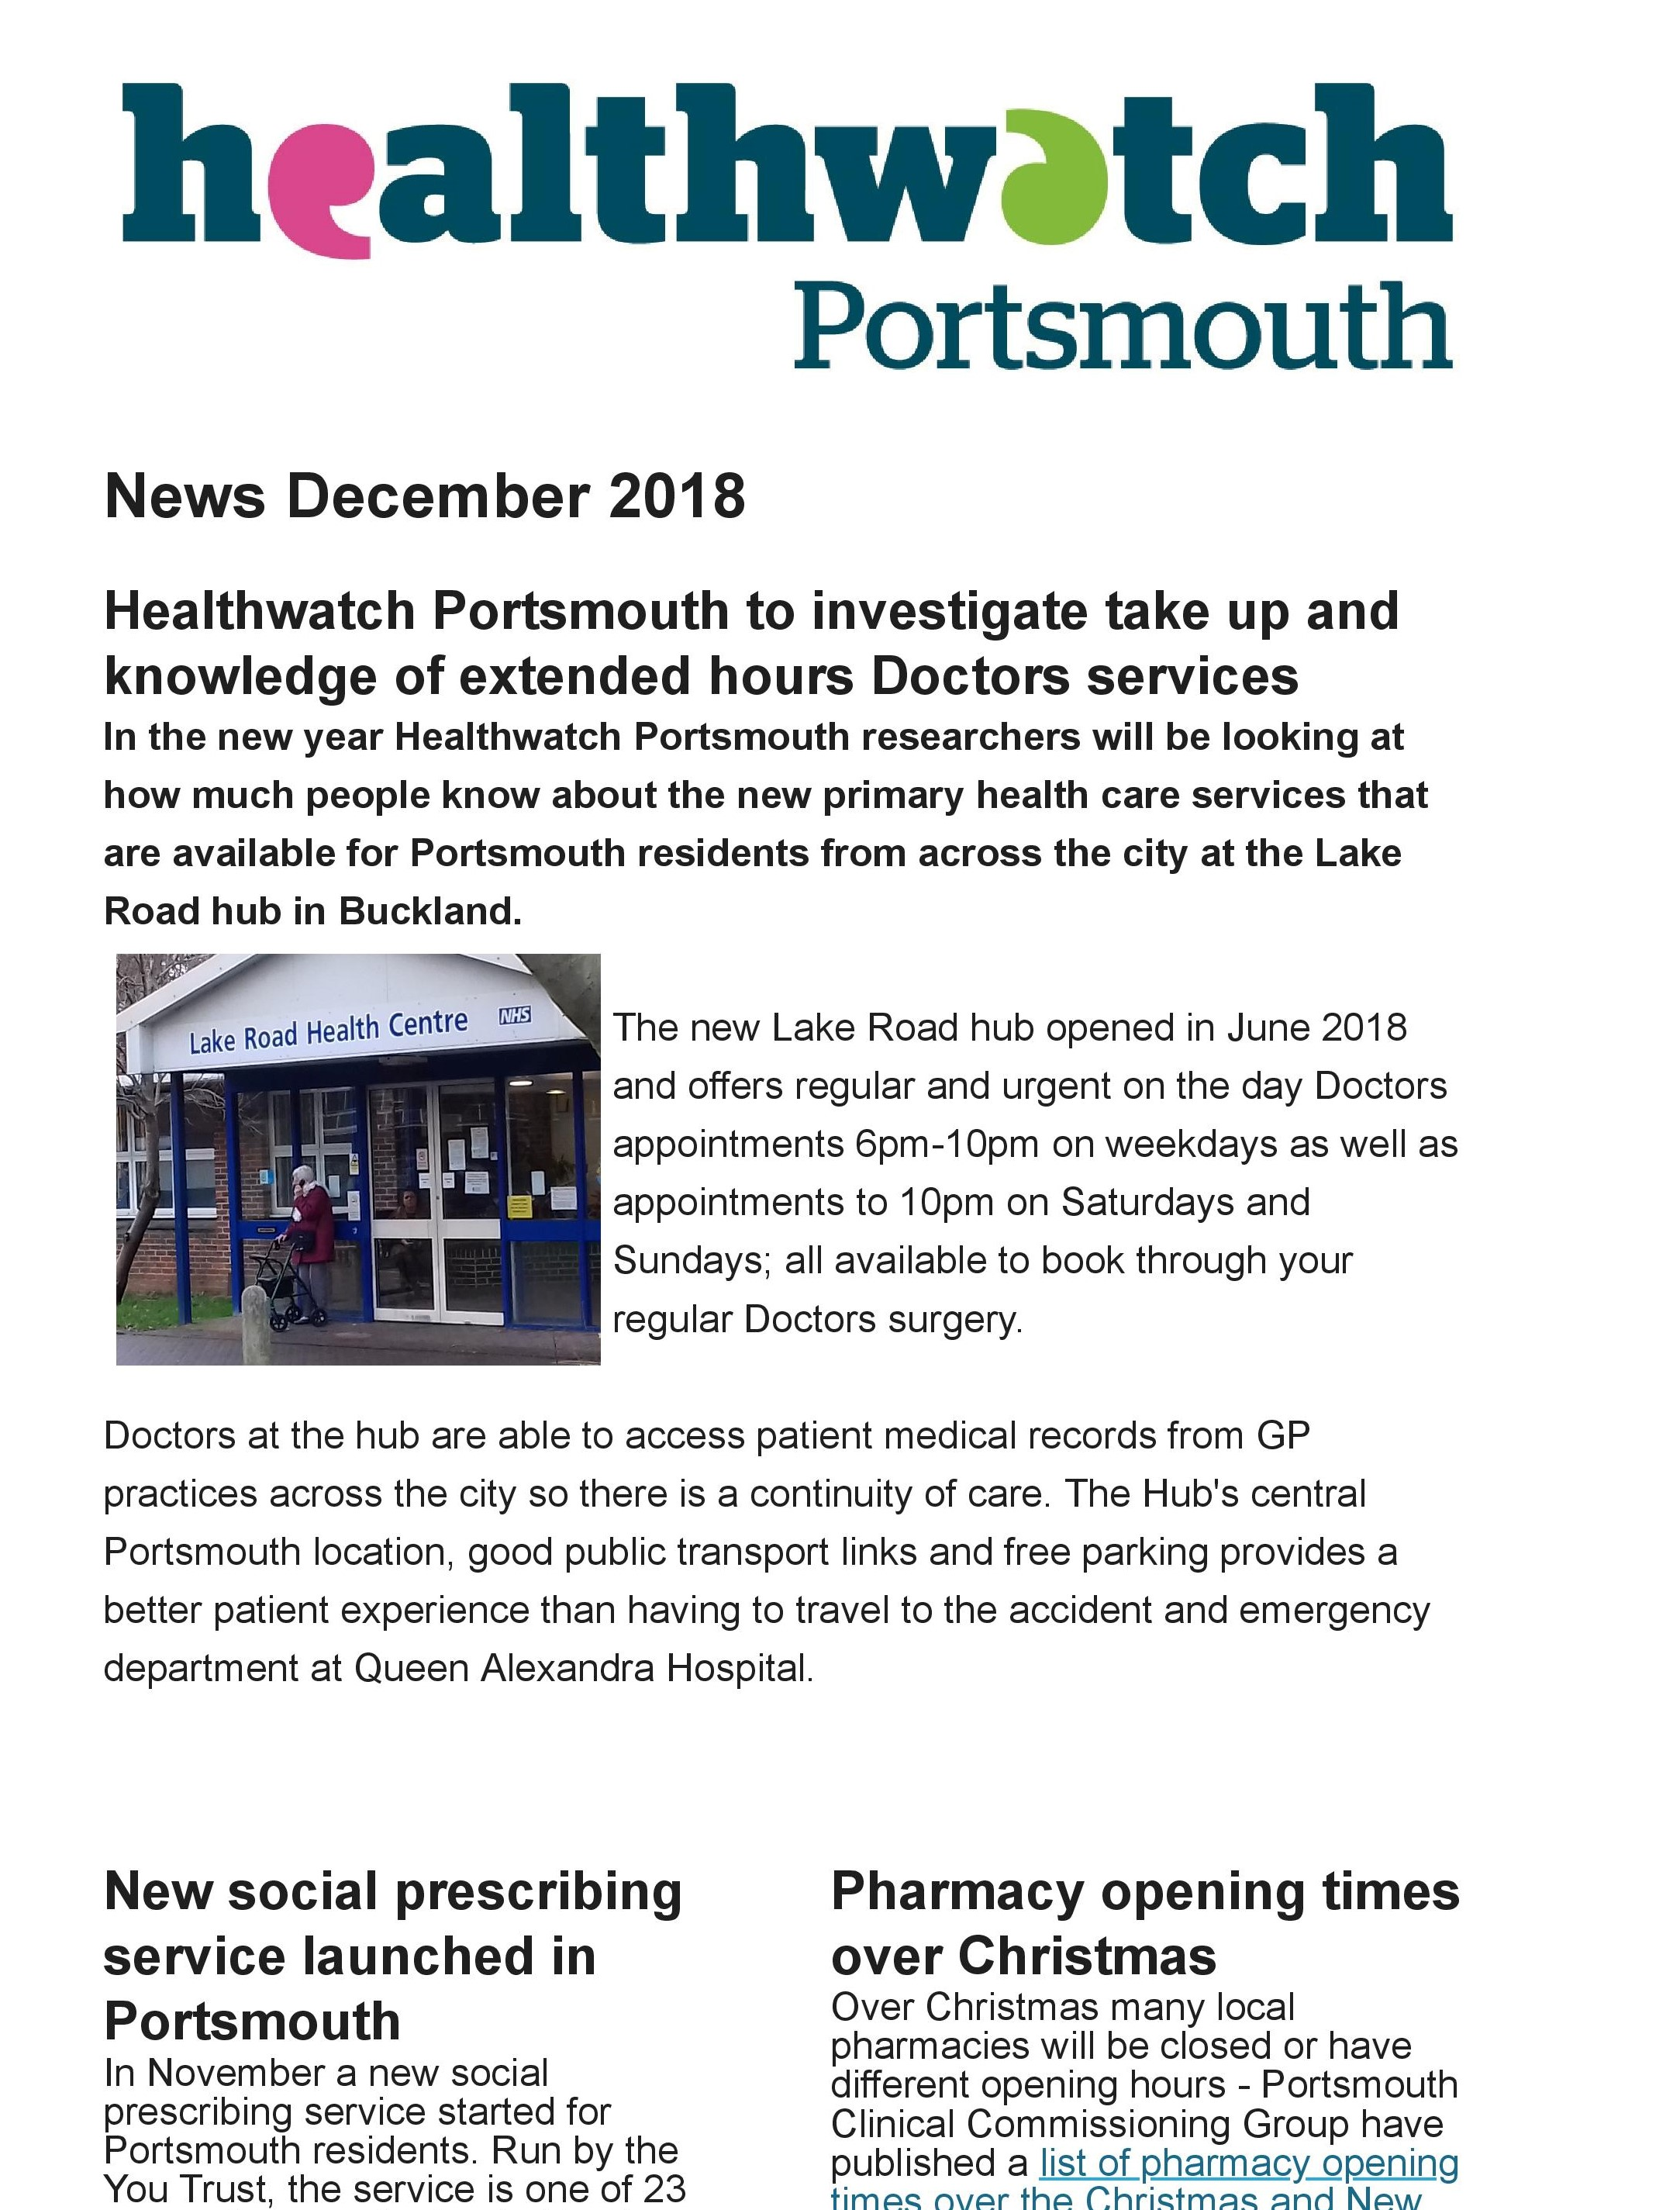 Healthwatch Portsmouth Winter 2018 news